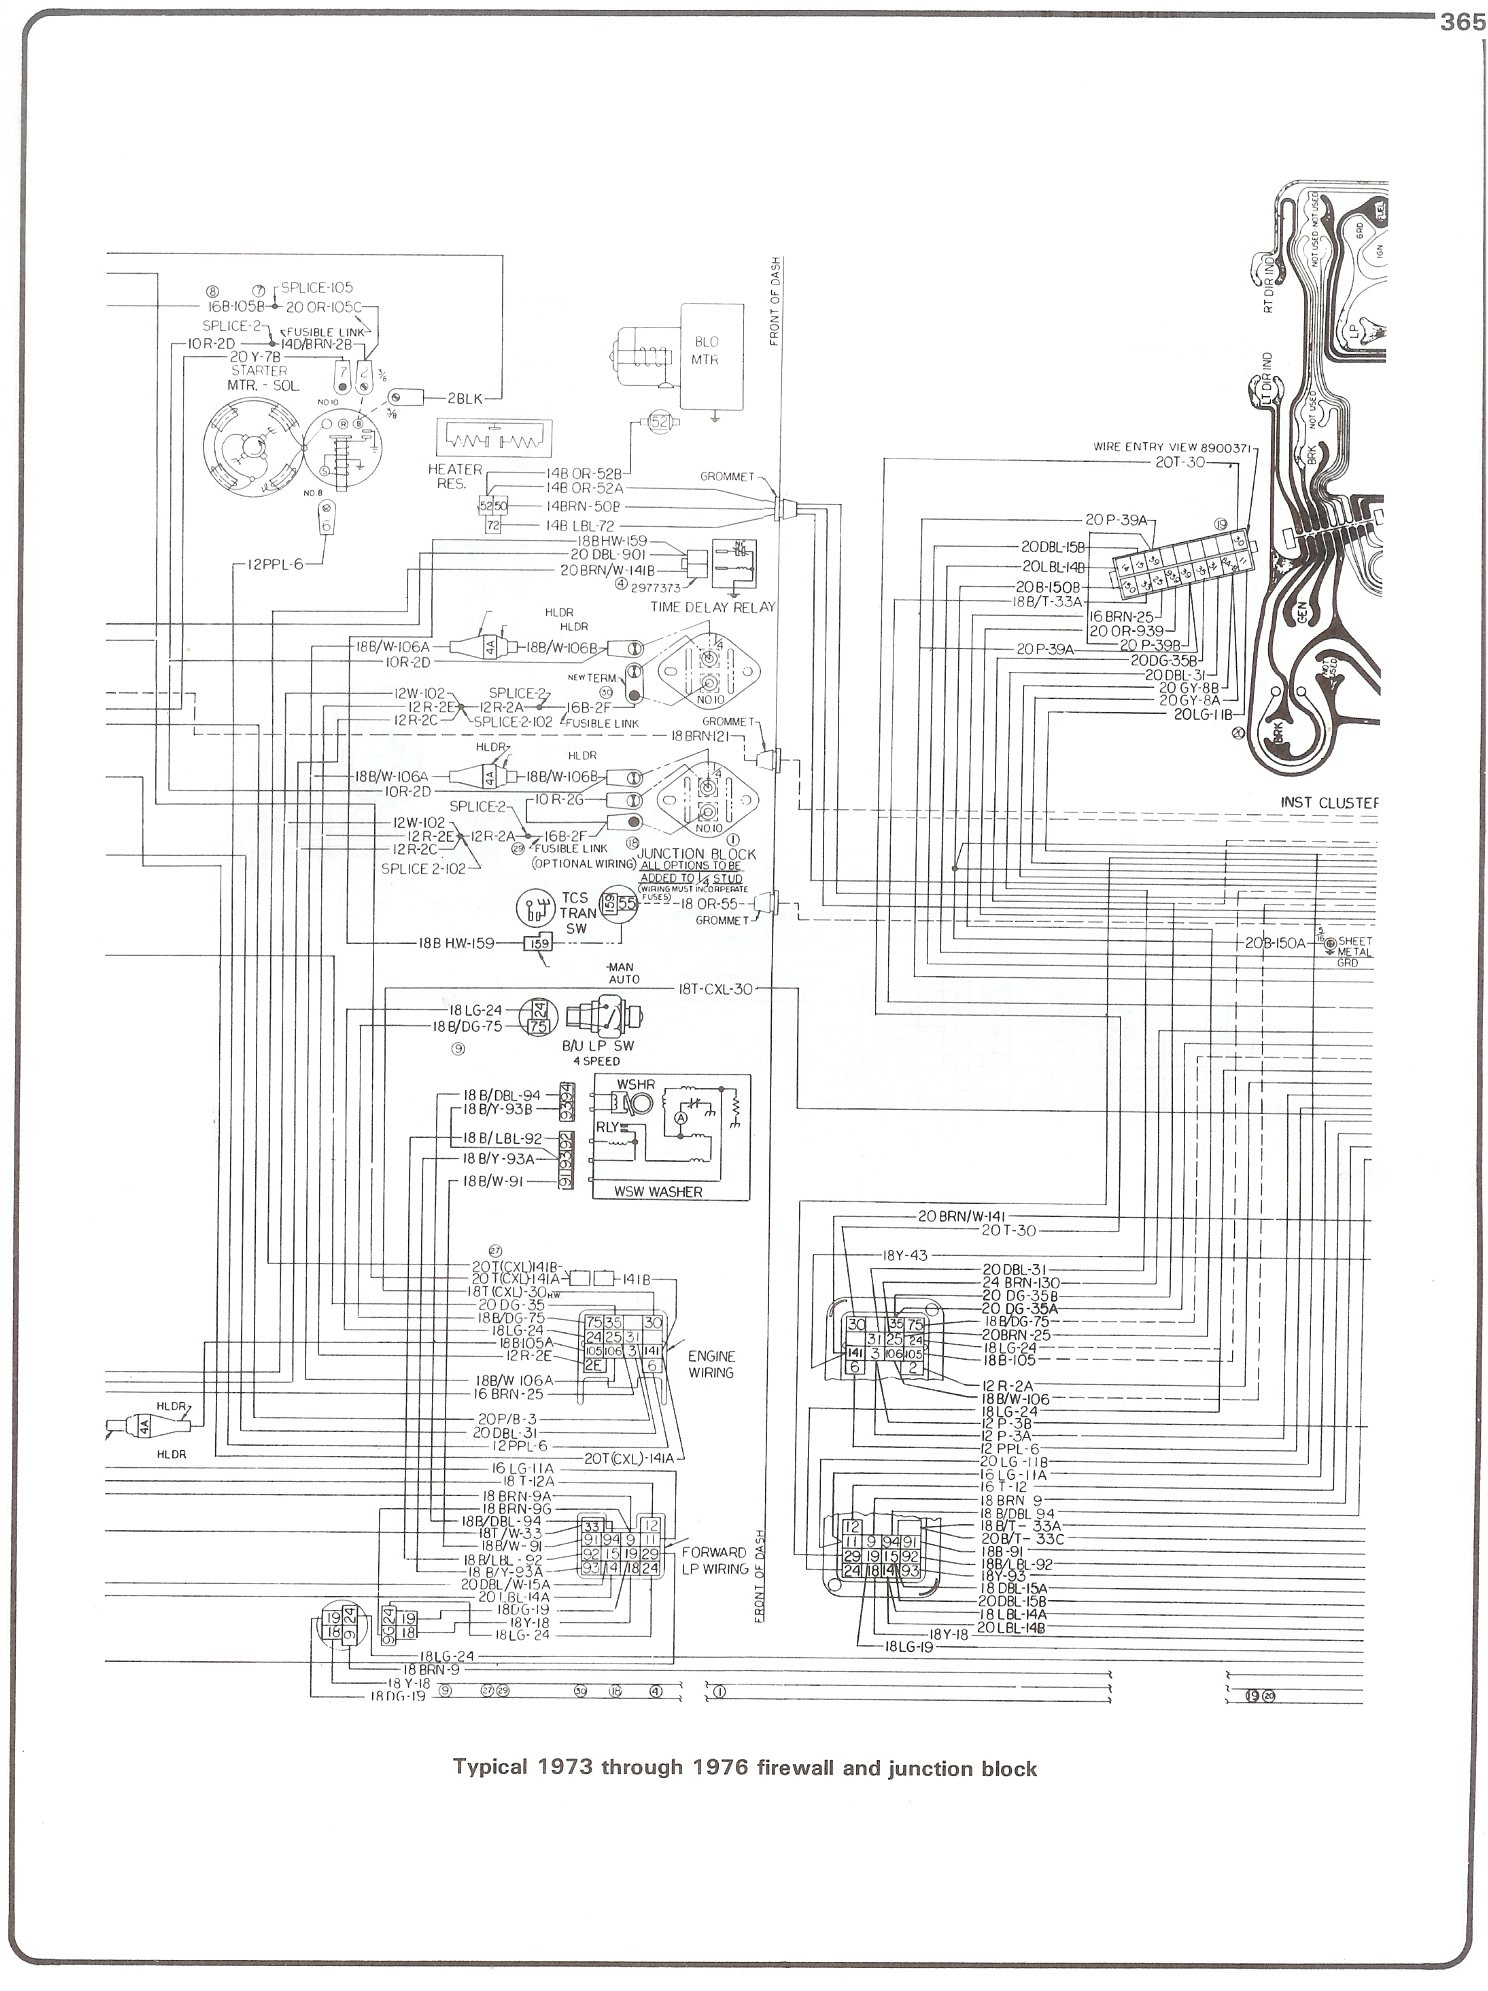 87 chevy master cylinder diagram